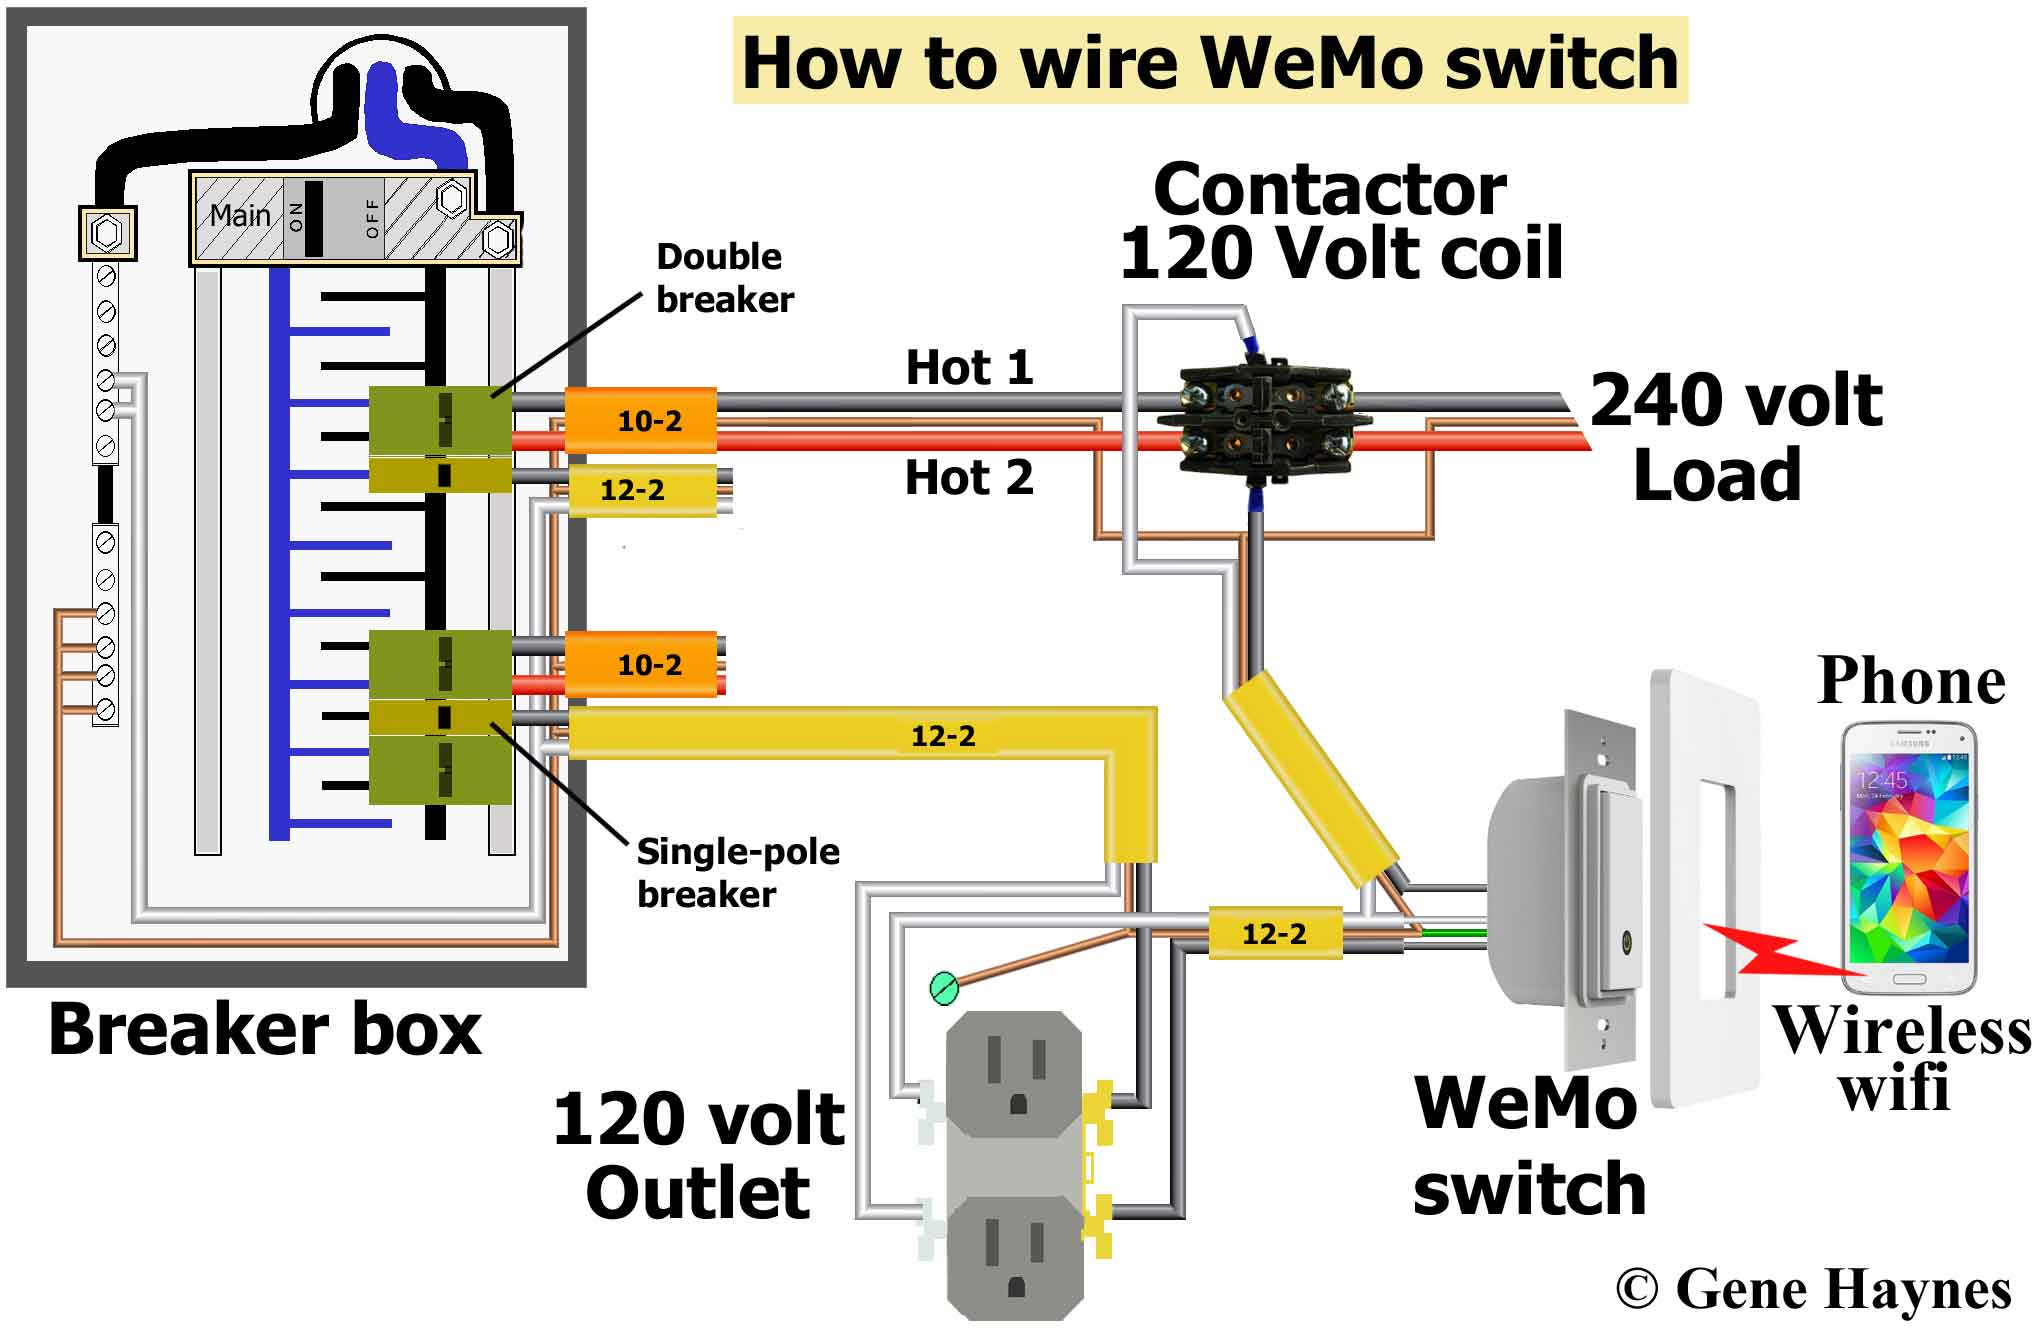 WeMo switch wiring illustration 3 how to wire on delay timer icm102 wiring diagram at gsmportal.co